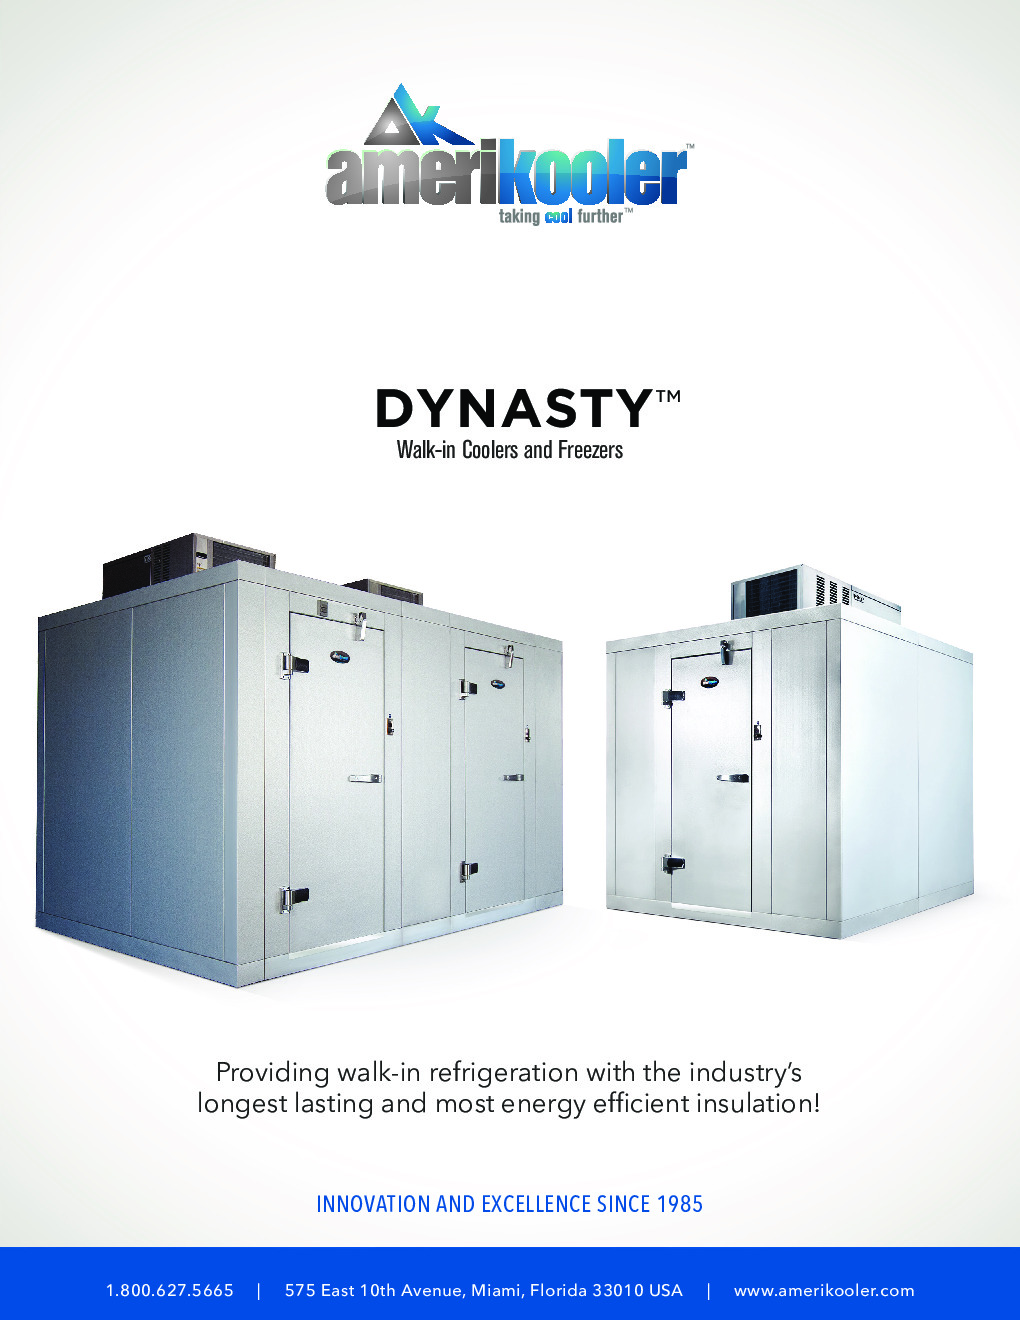 AmeriKooler DW091477F-7/7 Indoor 9' X 14' Walk-In, 7' L Cooler with Floor and 7' L Freezer, Box Only